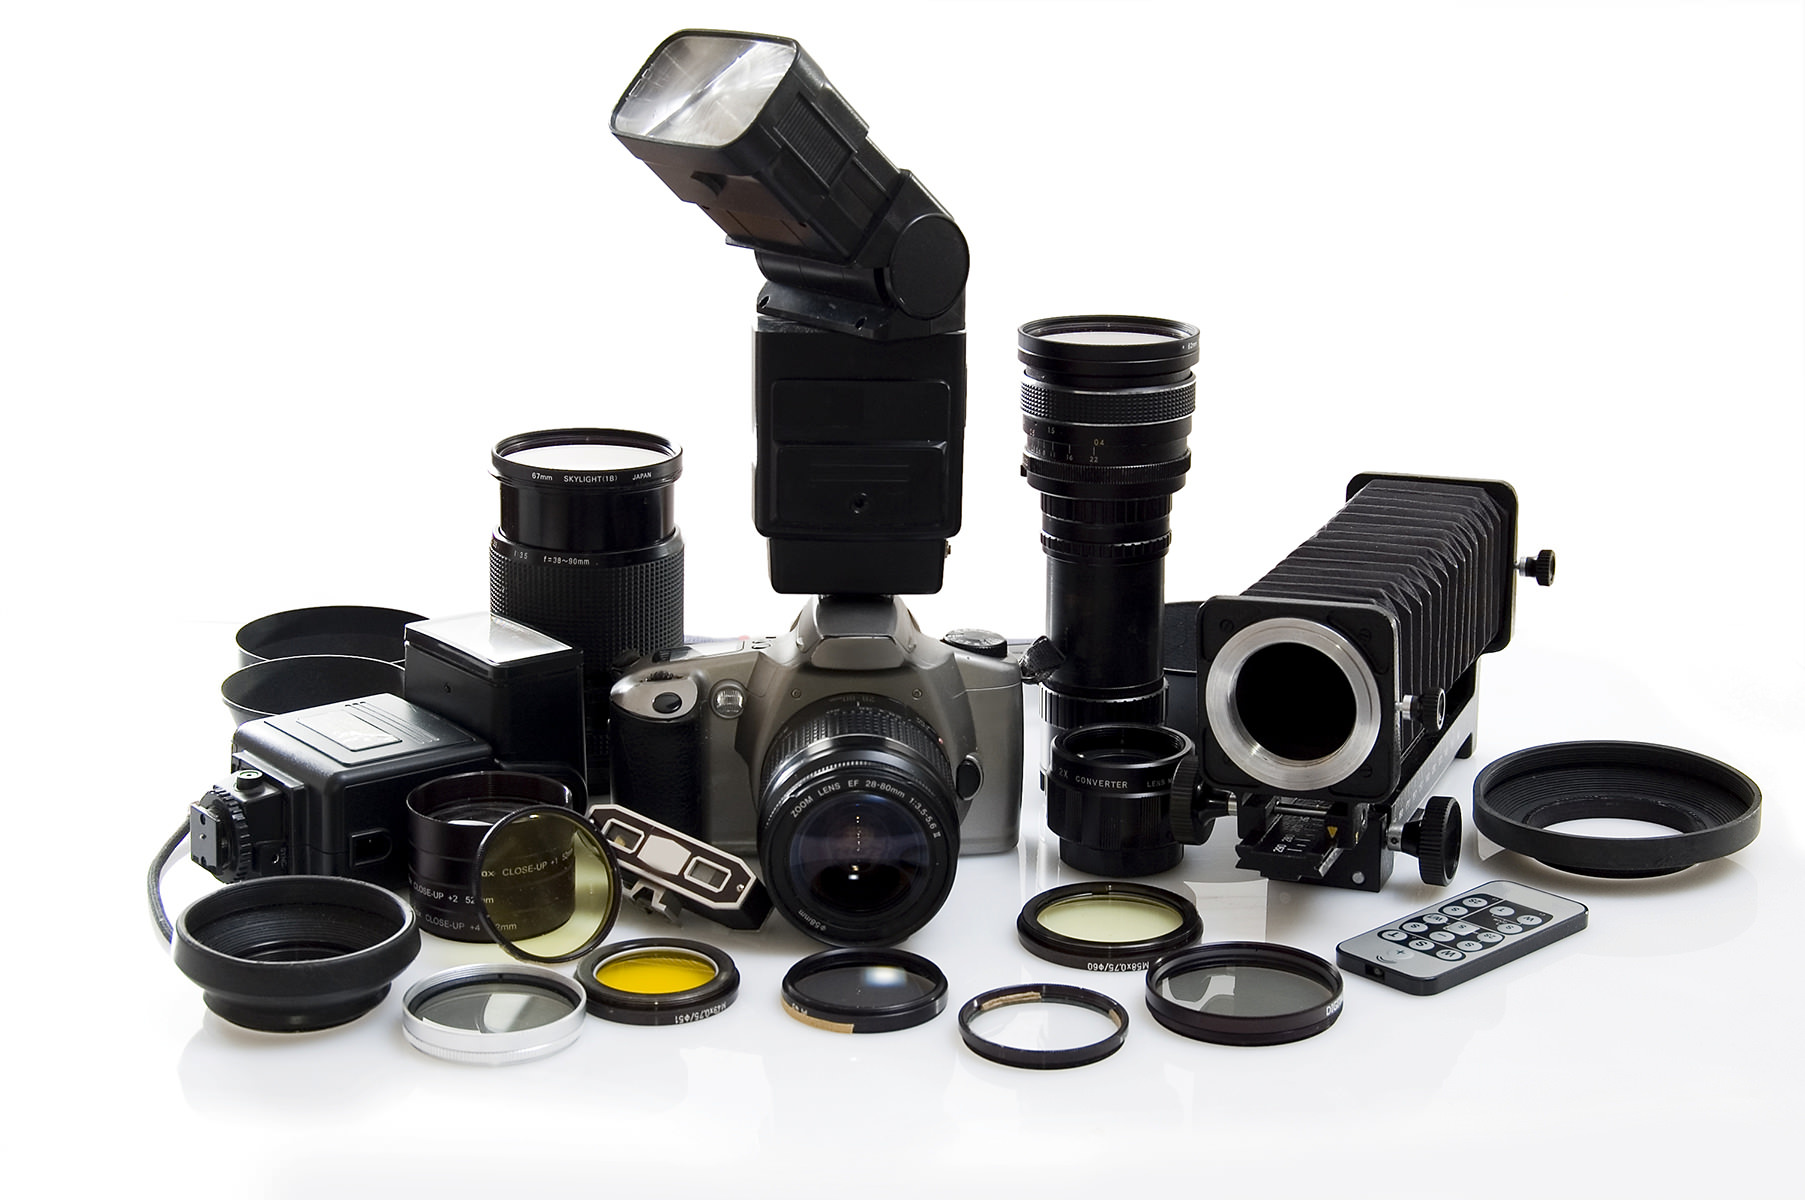 equipment photographic camera photographer basic diagram parts functions gear education takes stages level royalty medium proaudio shopping mode lens isolated